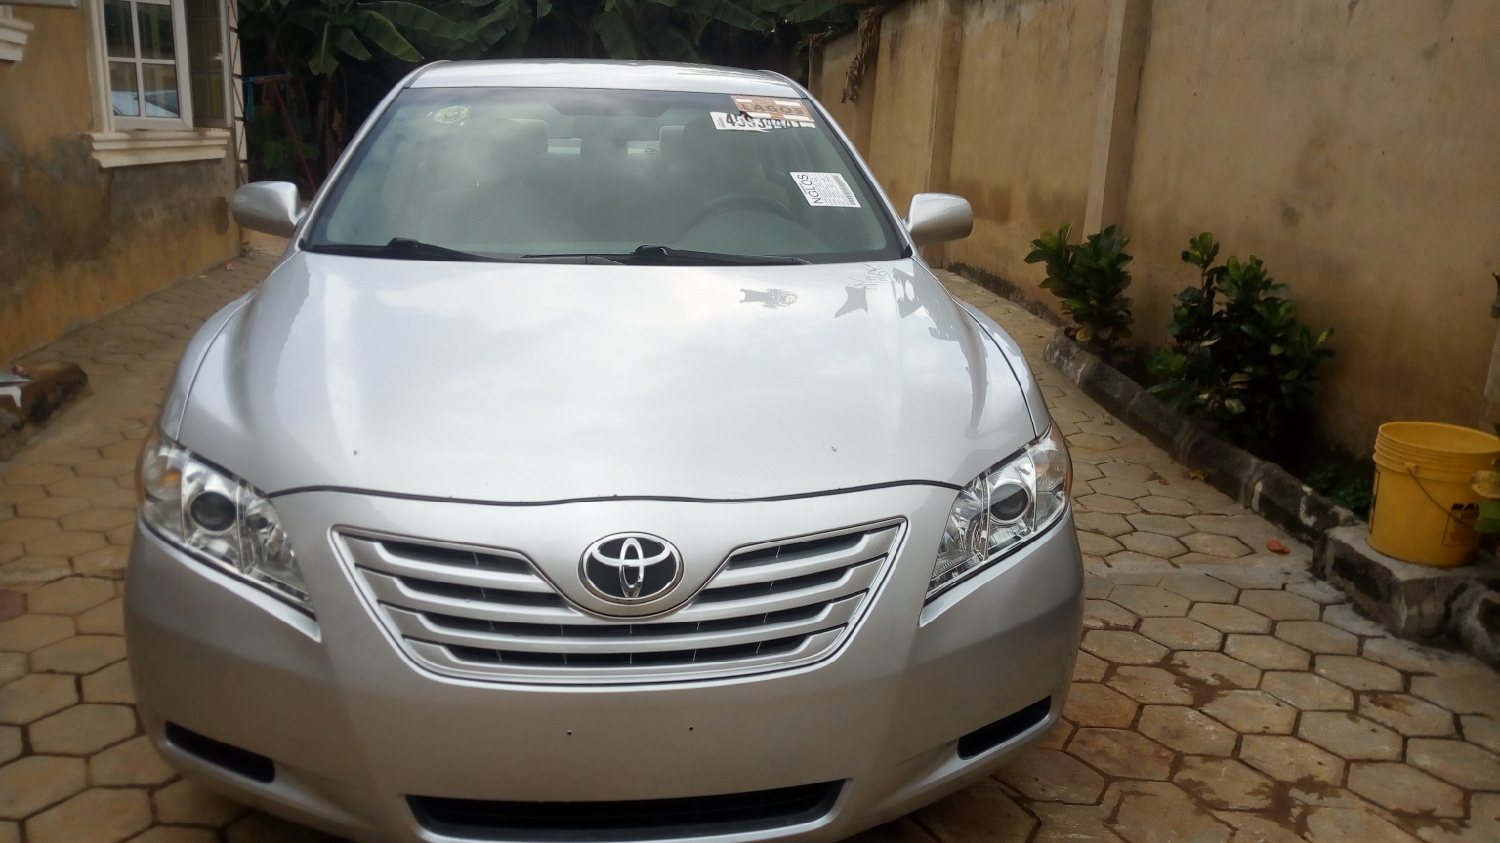 Toyota Camry 2008 2.4 LE Silver | Cars for sale in Osun State, Ife